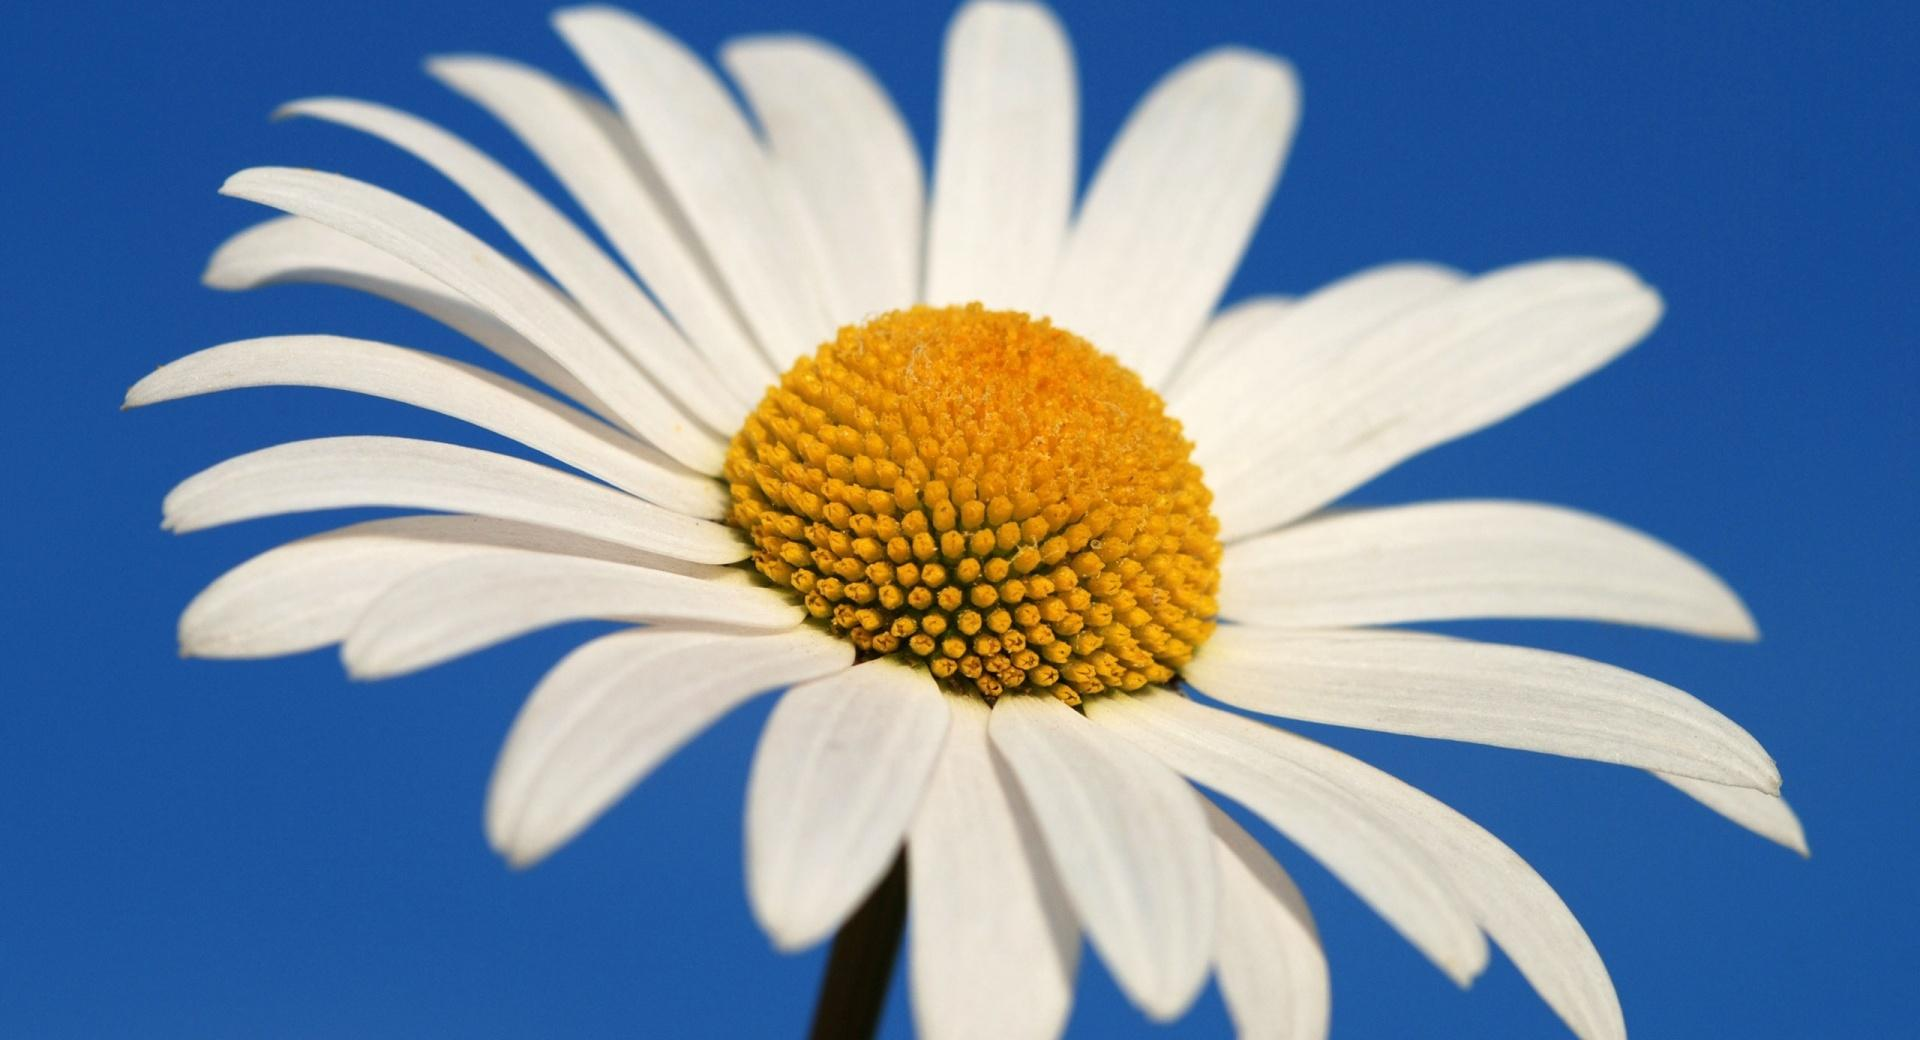 White Daisy Against A Blue Sky wallpapers HD quality